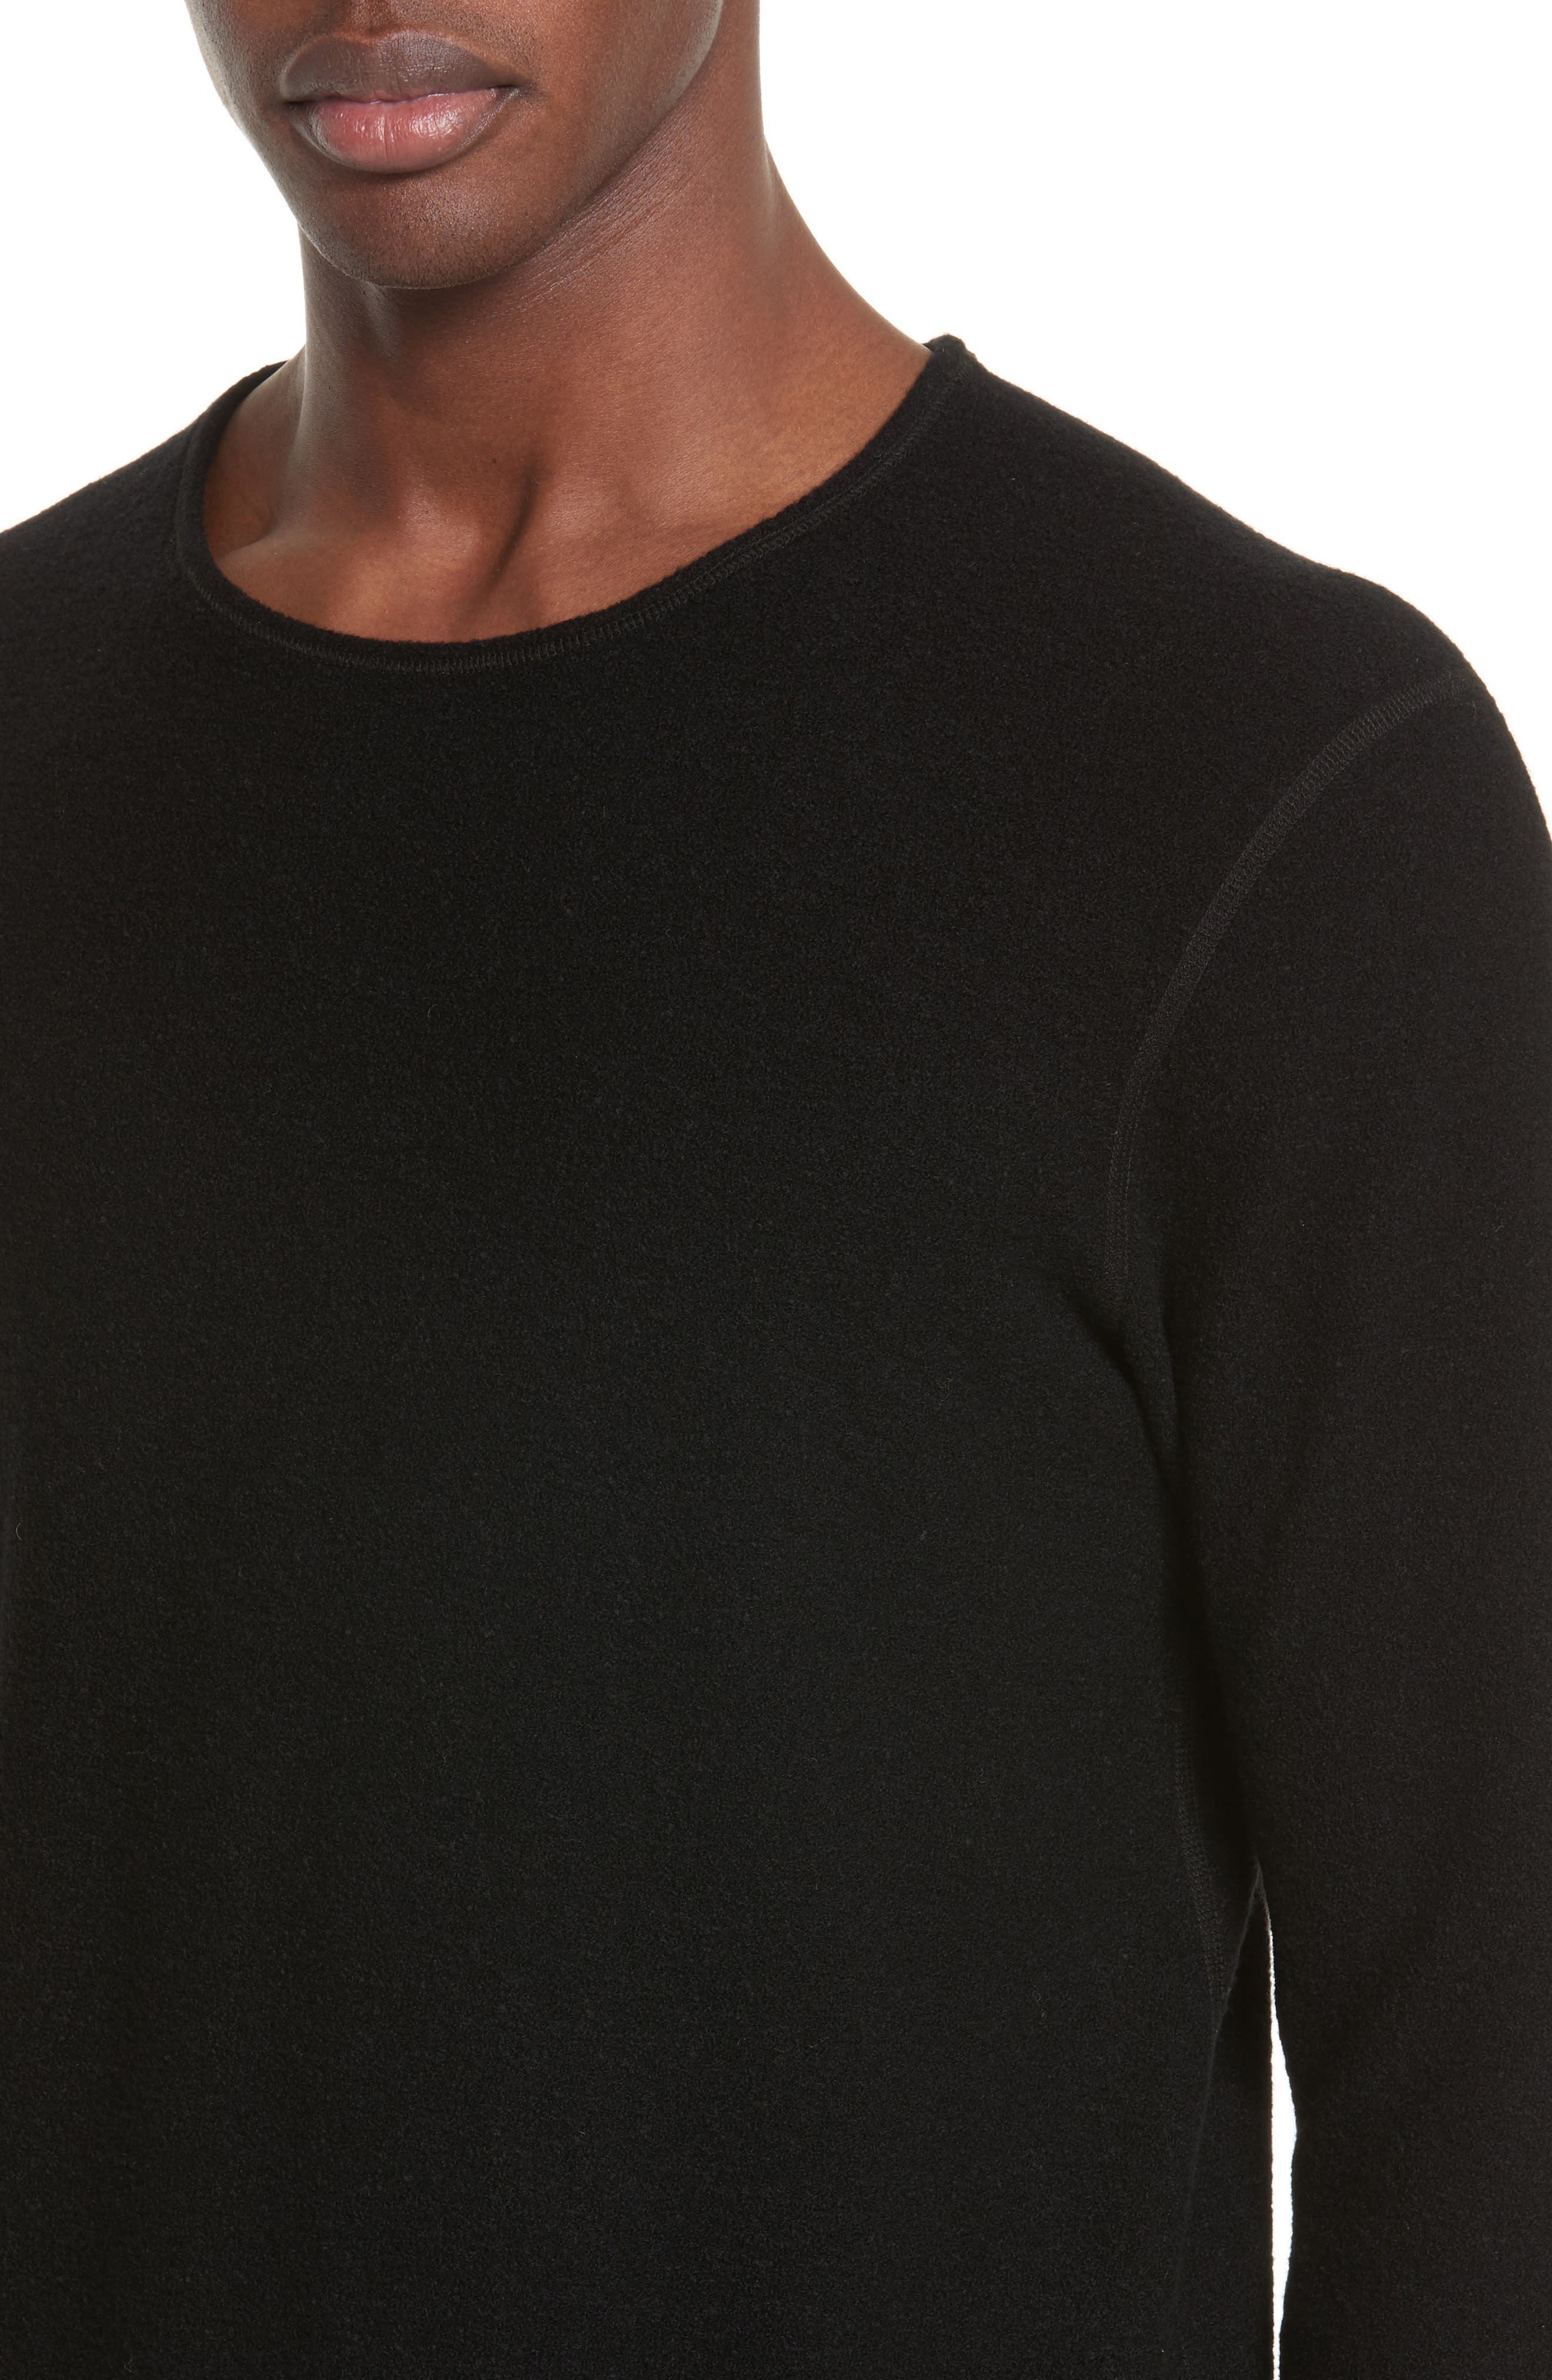 Felted Wool Blend Sweater,                             Alternate thumbnail 4, color,                             Black